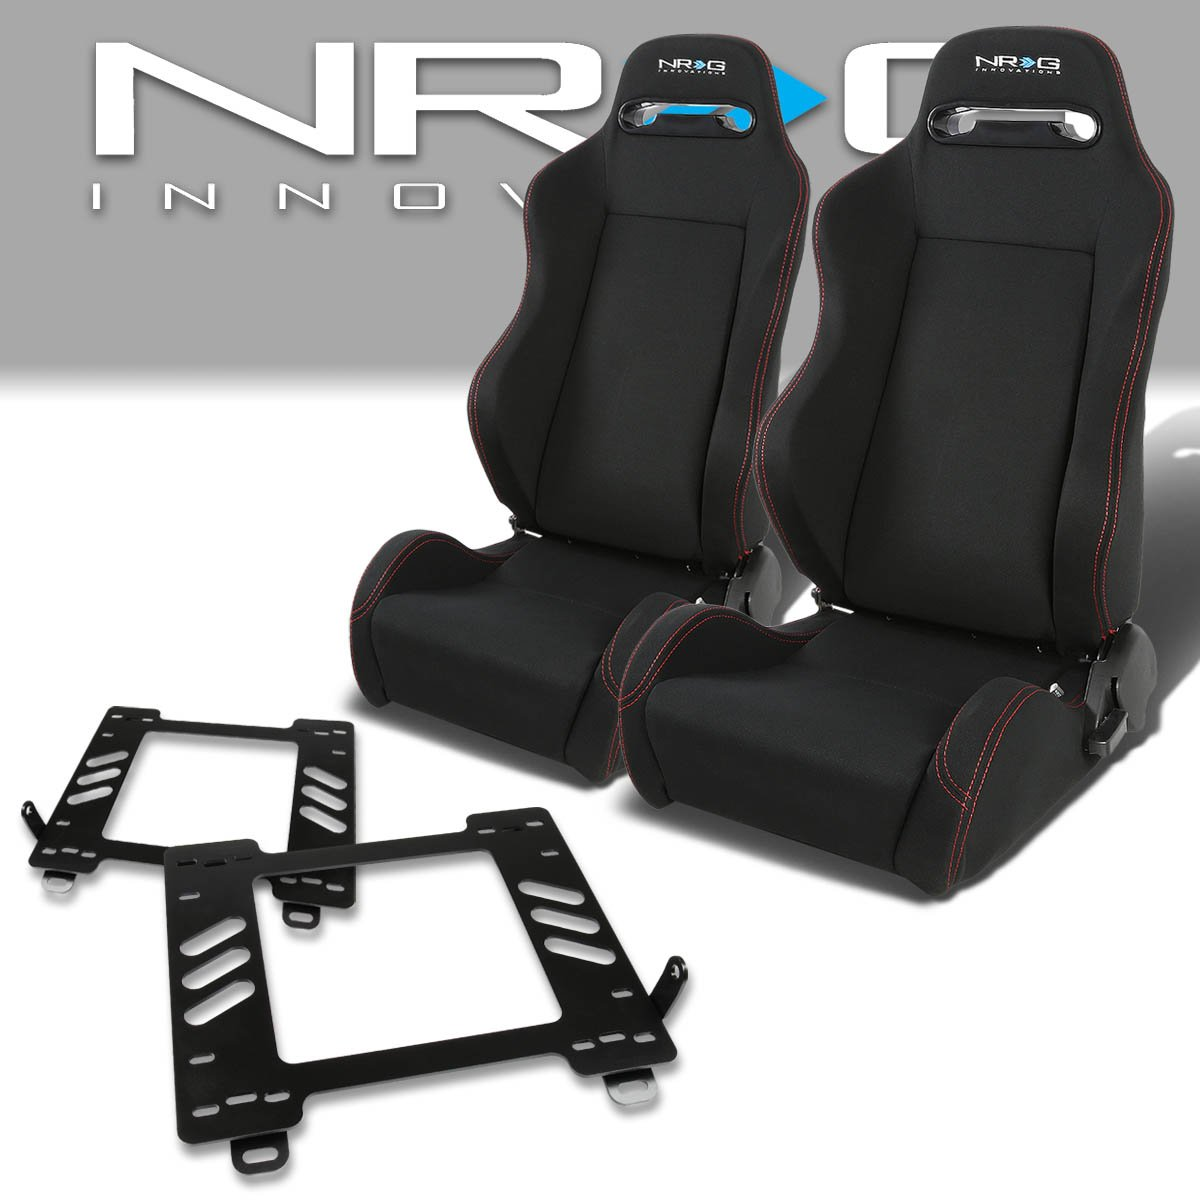 2 4-Point Cam Lock Seat Belt Red Pair of RST1PVCBK Racing Seats